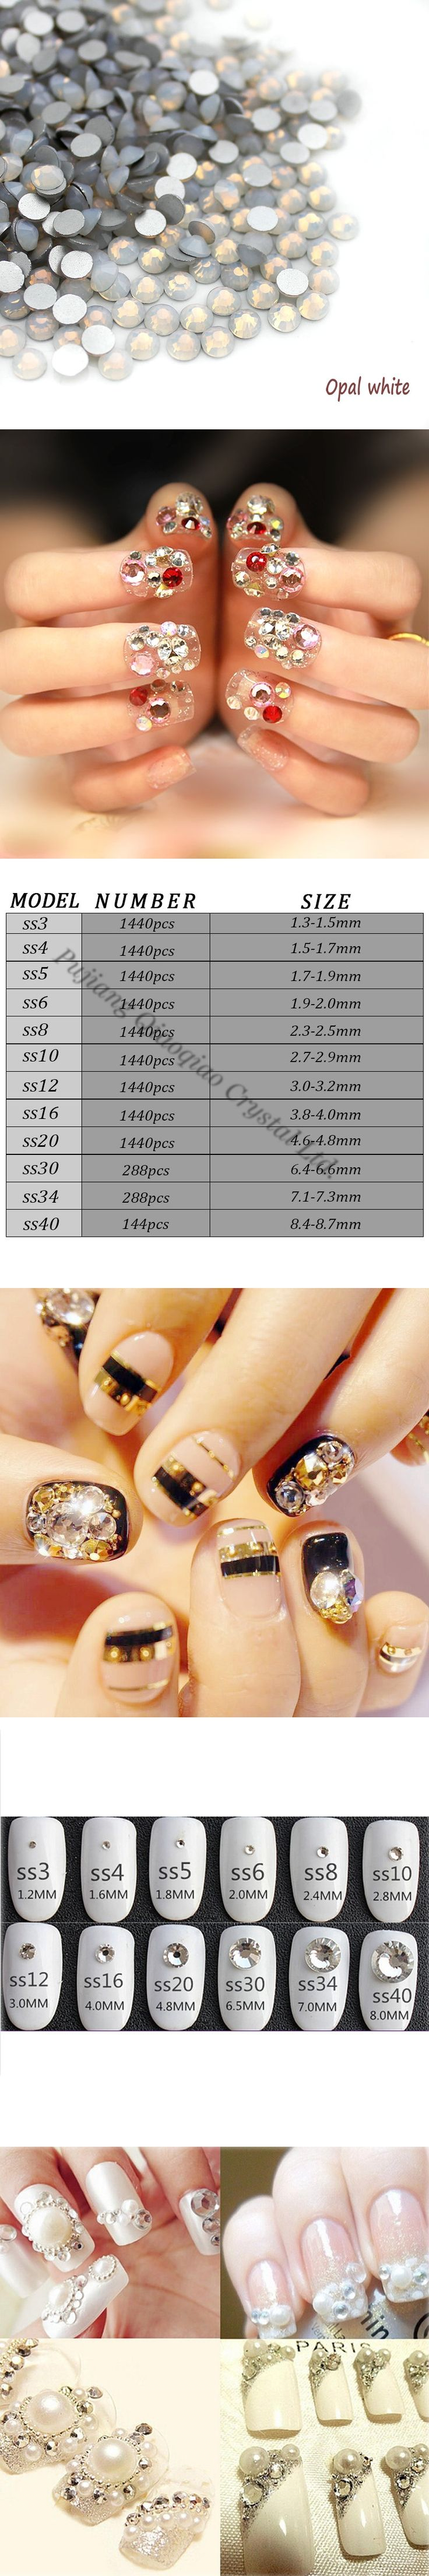 Super Shiny SS3-SS34 White Opal Glitter Non Hotfix Opal Color 3D Nail Art Decorations Flatback Rhinestones Strass Stones